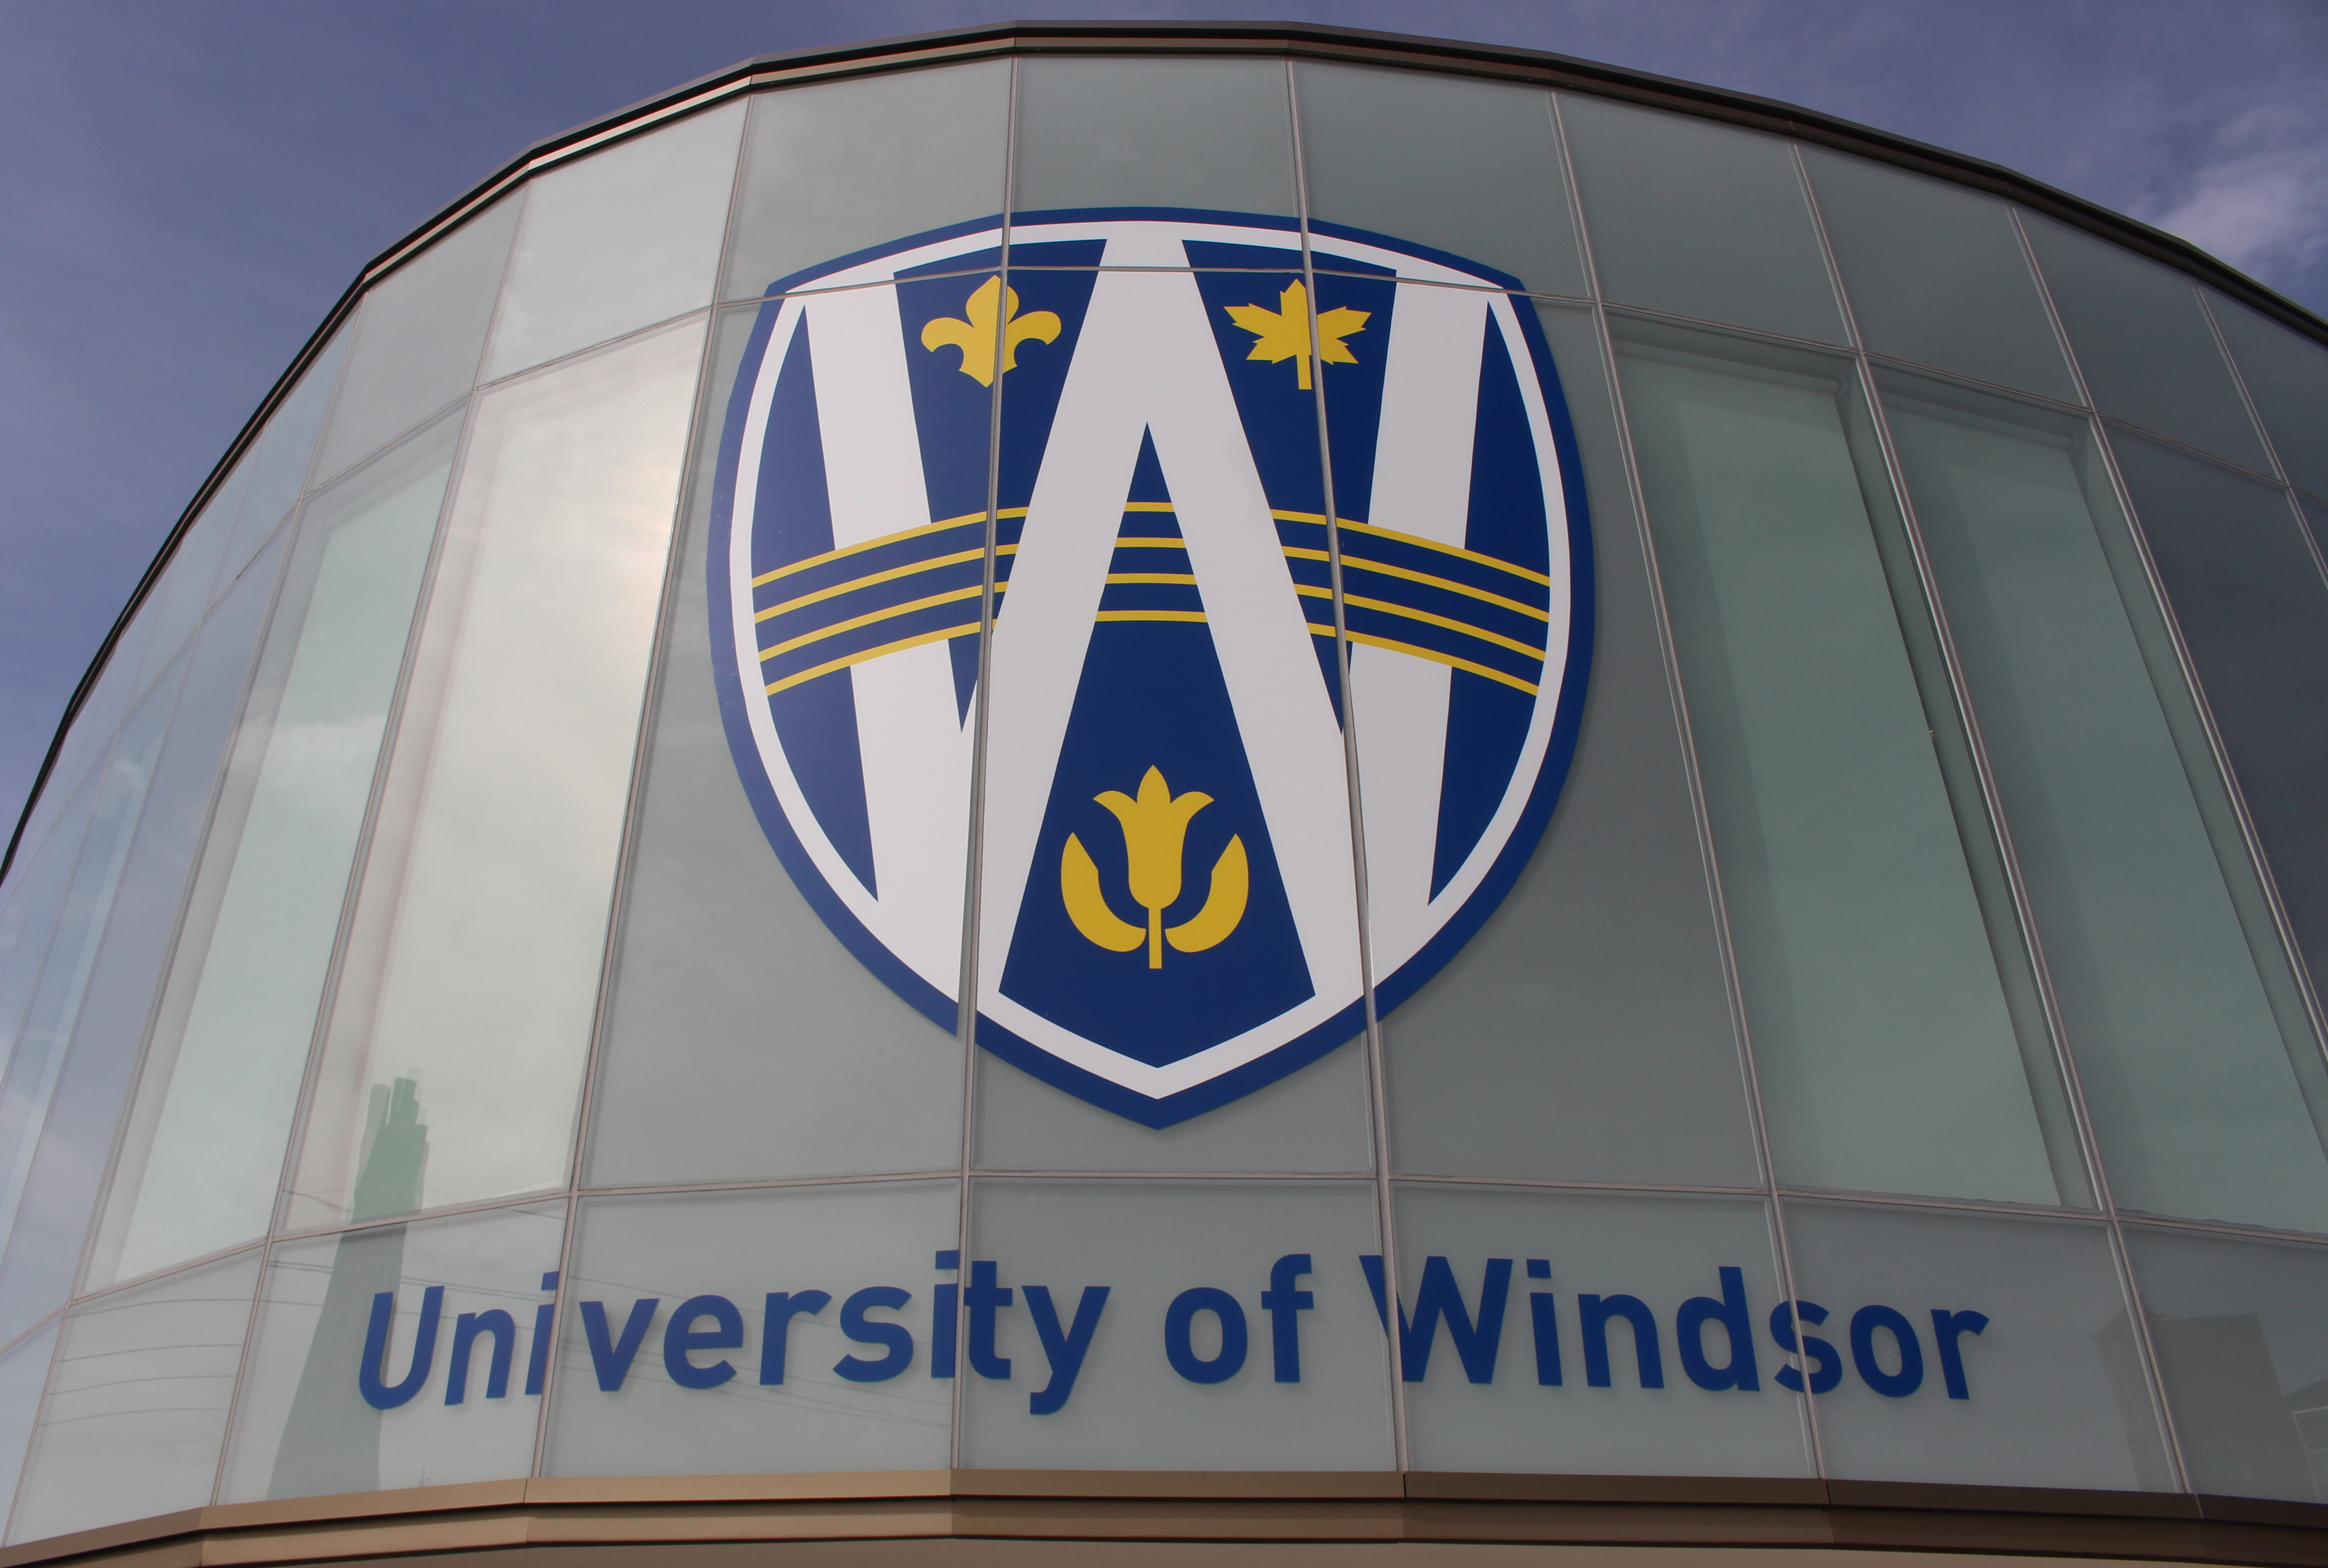 University of Windsor logo on the side of the new Stephen and Vicki Adams Welcome Centre, October 2, 2015. (Photo by Mike Vlasveld)